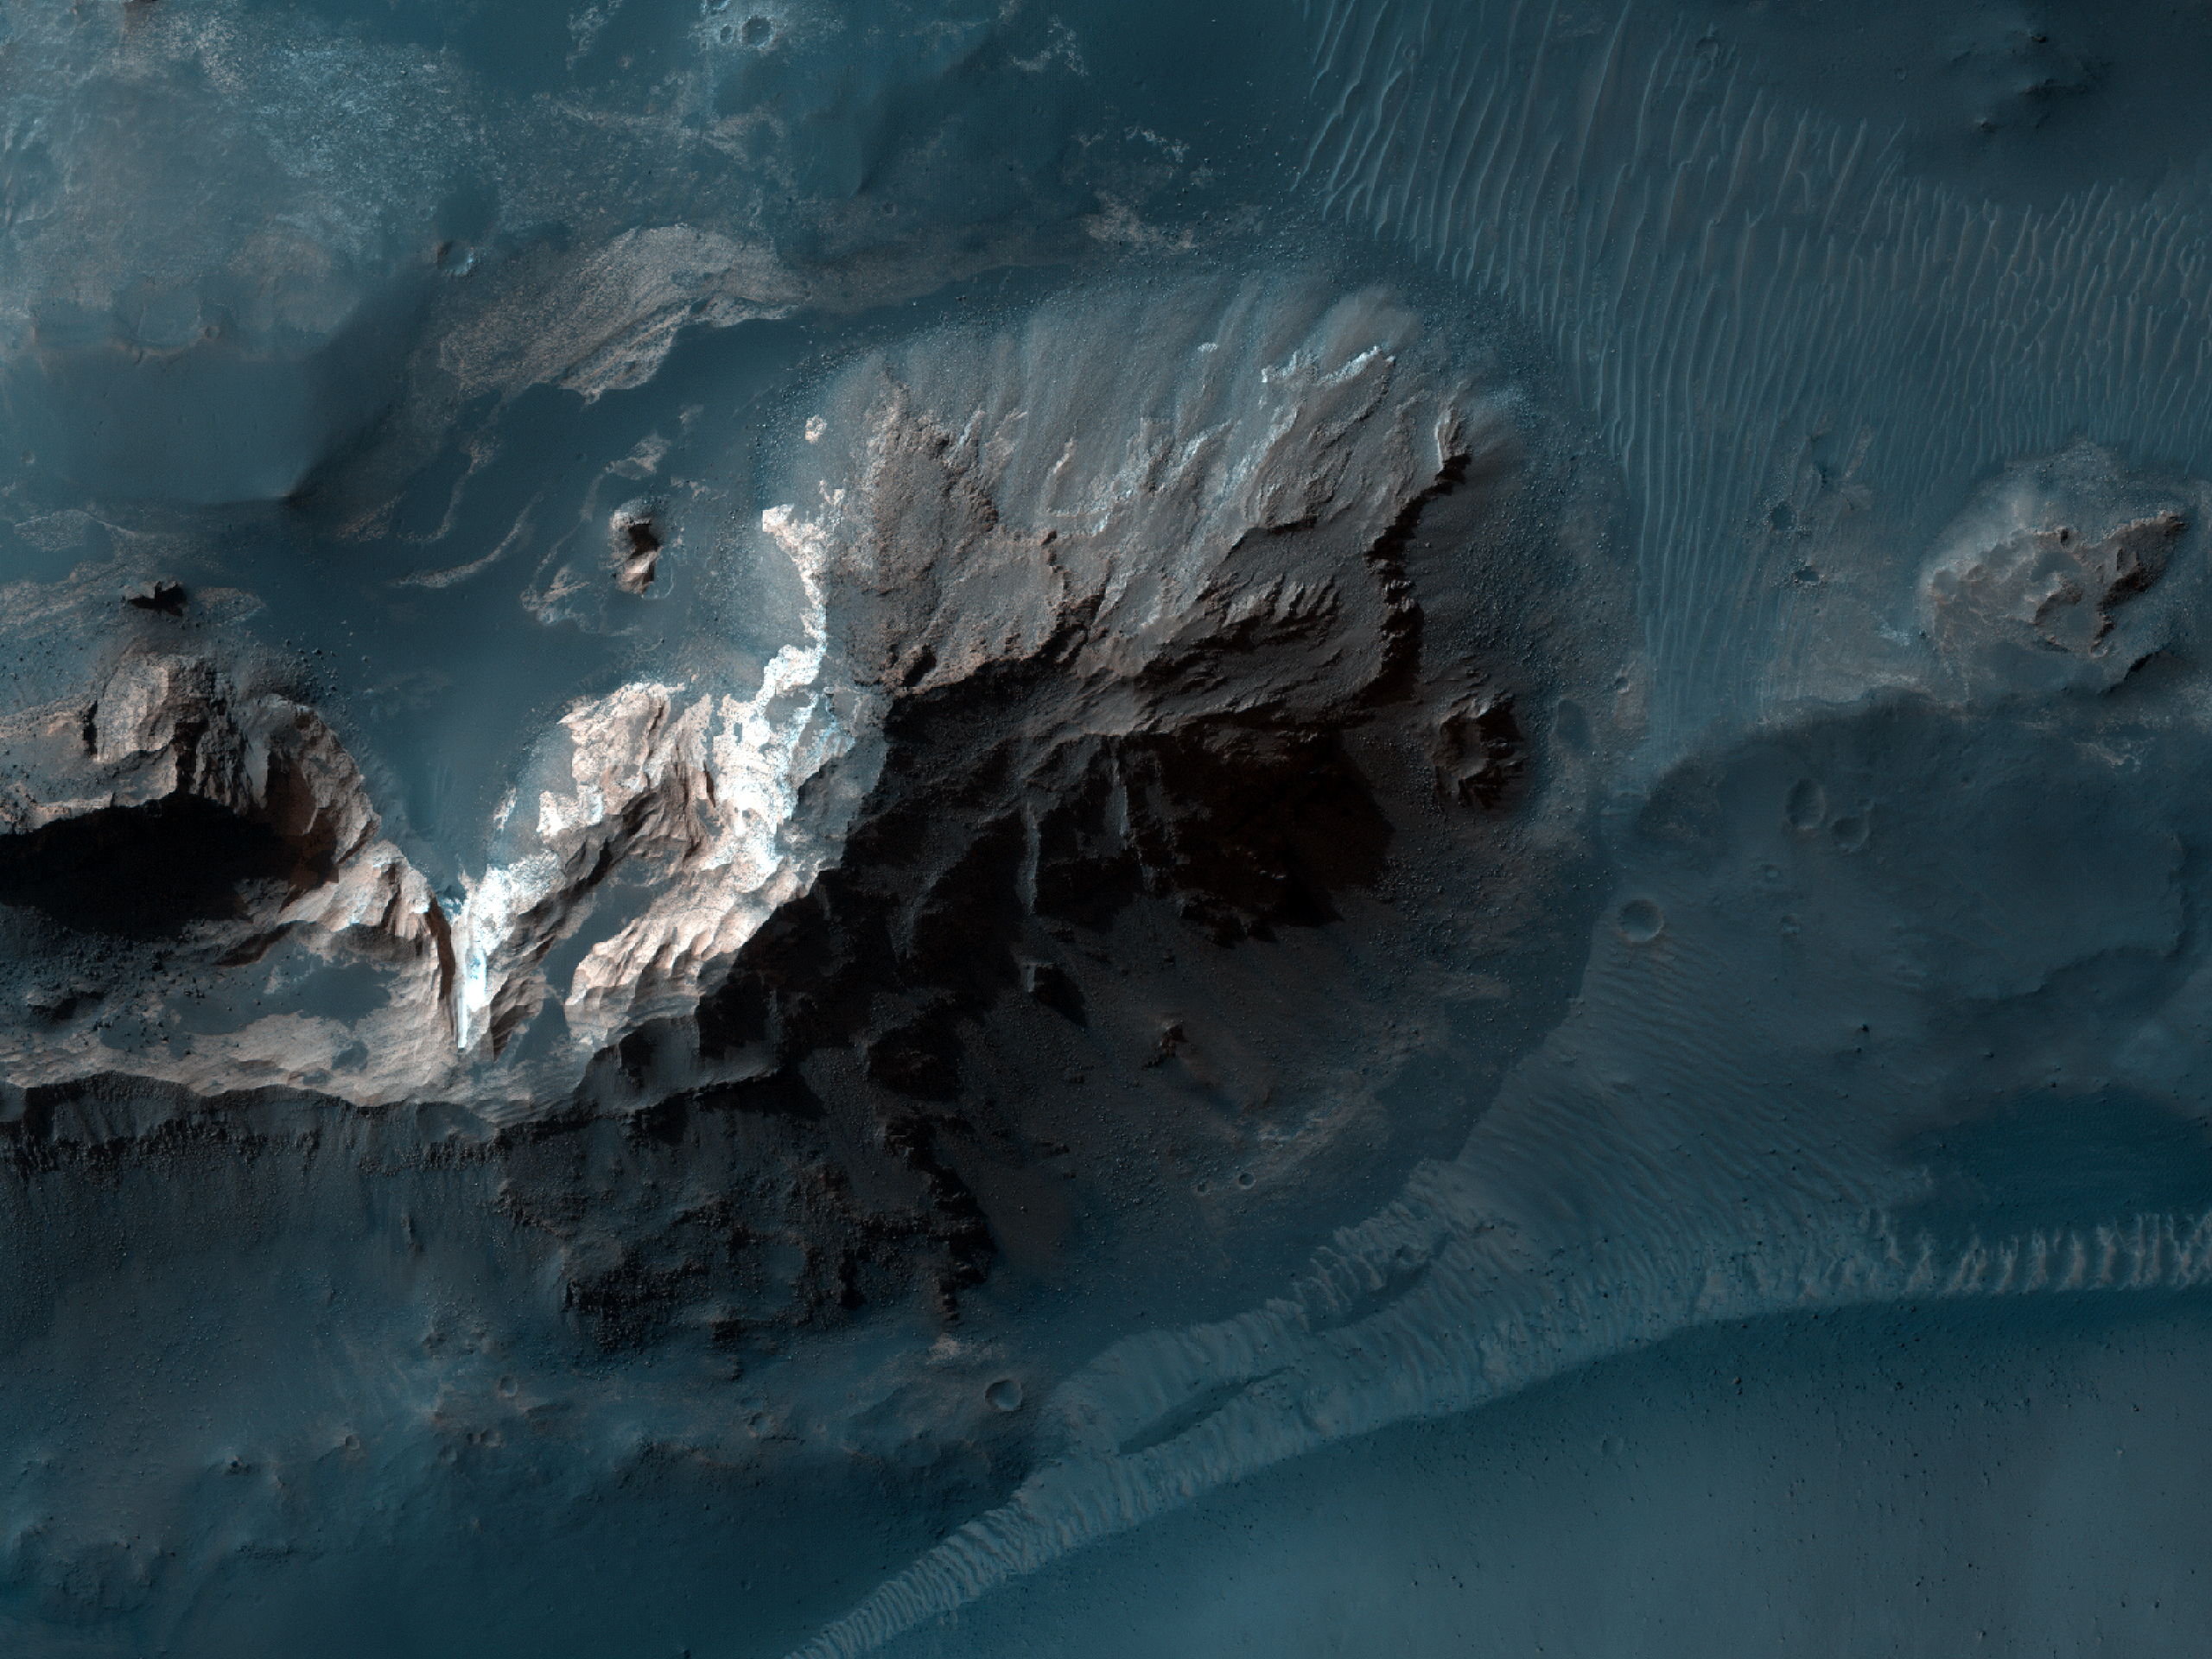 Chaos on the Floor of Candor Chasma